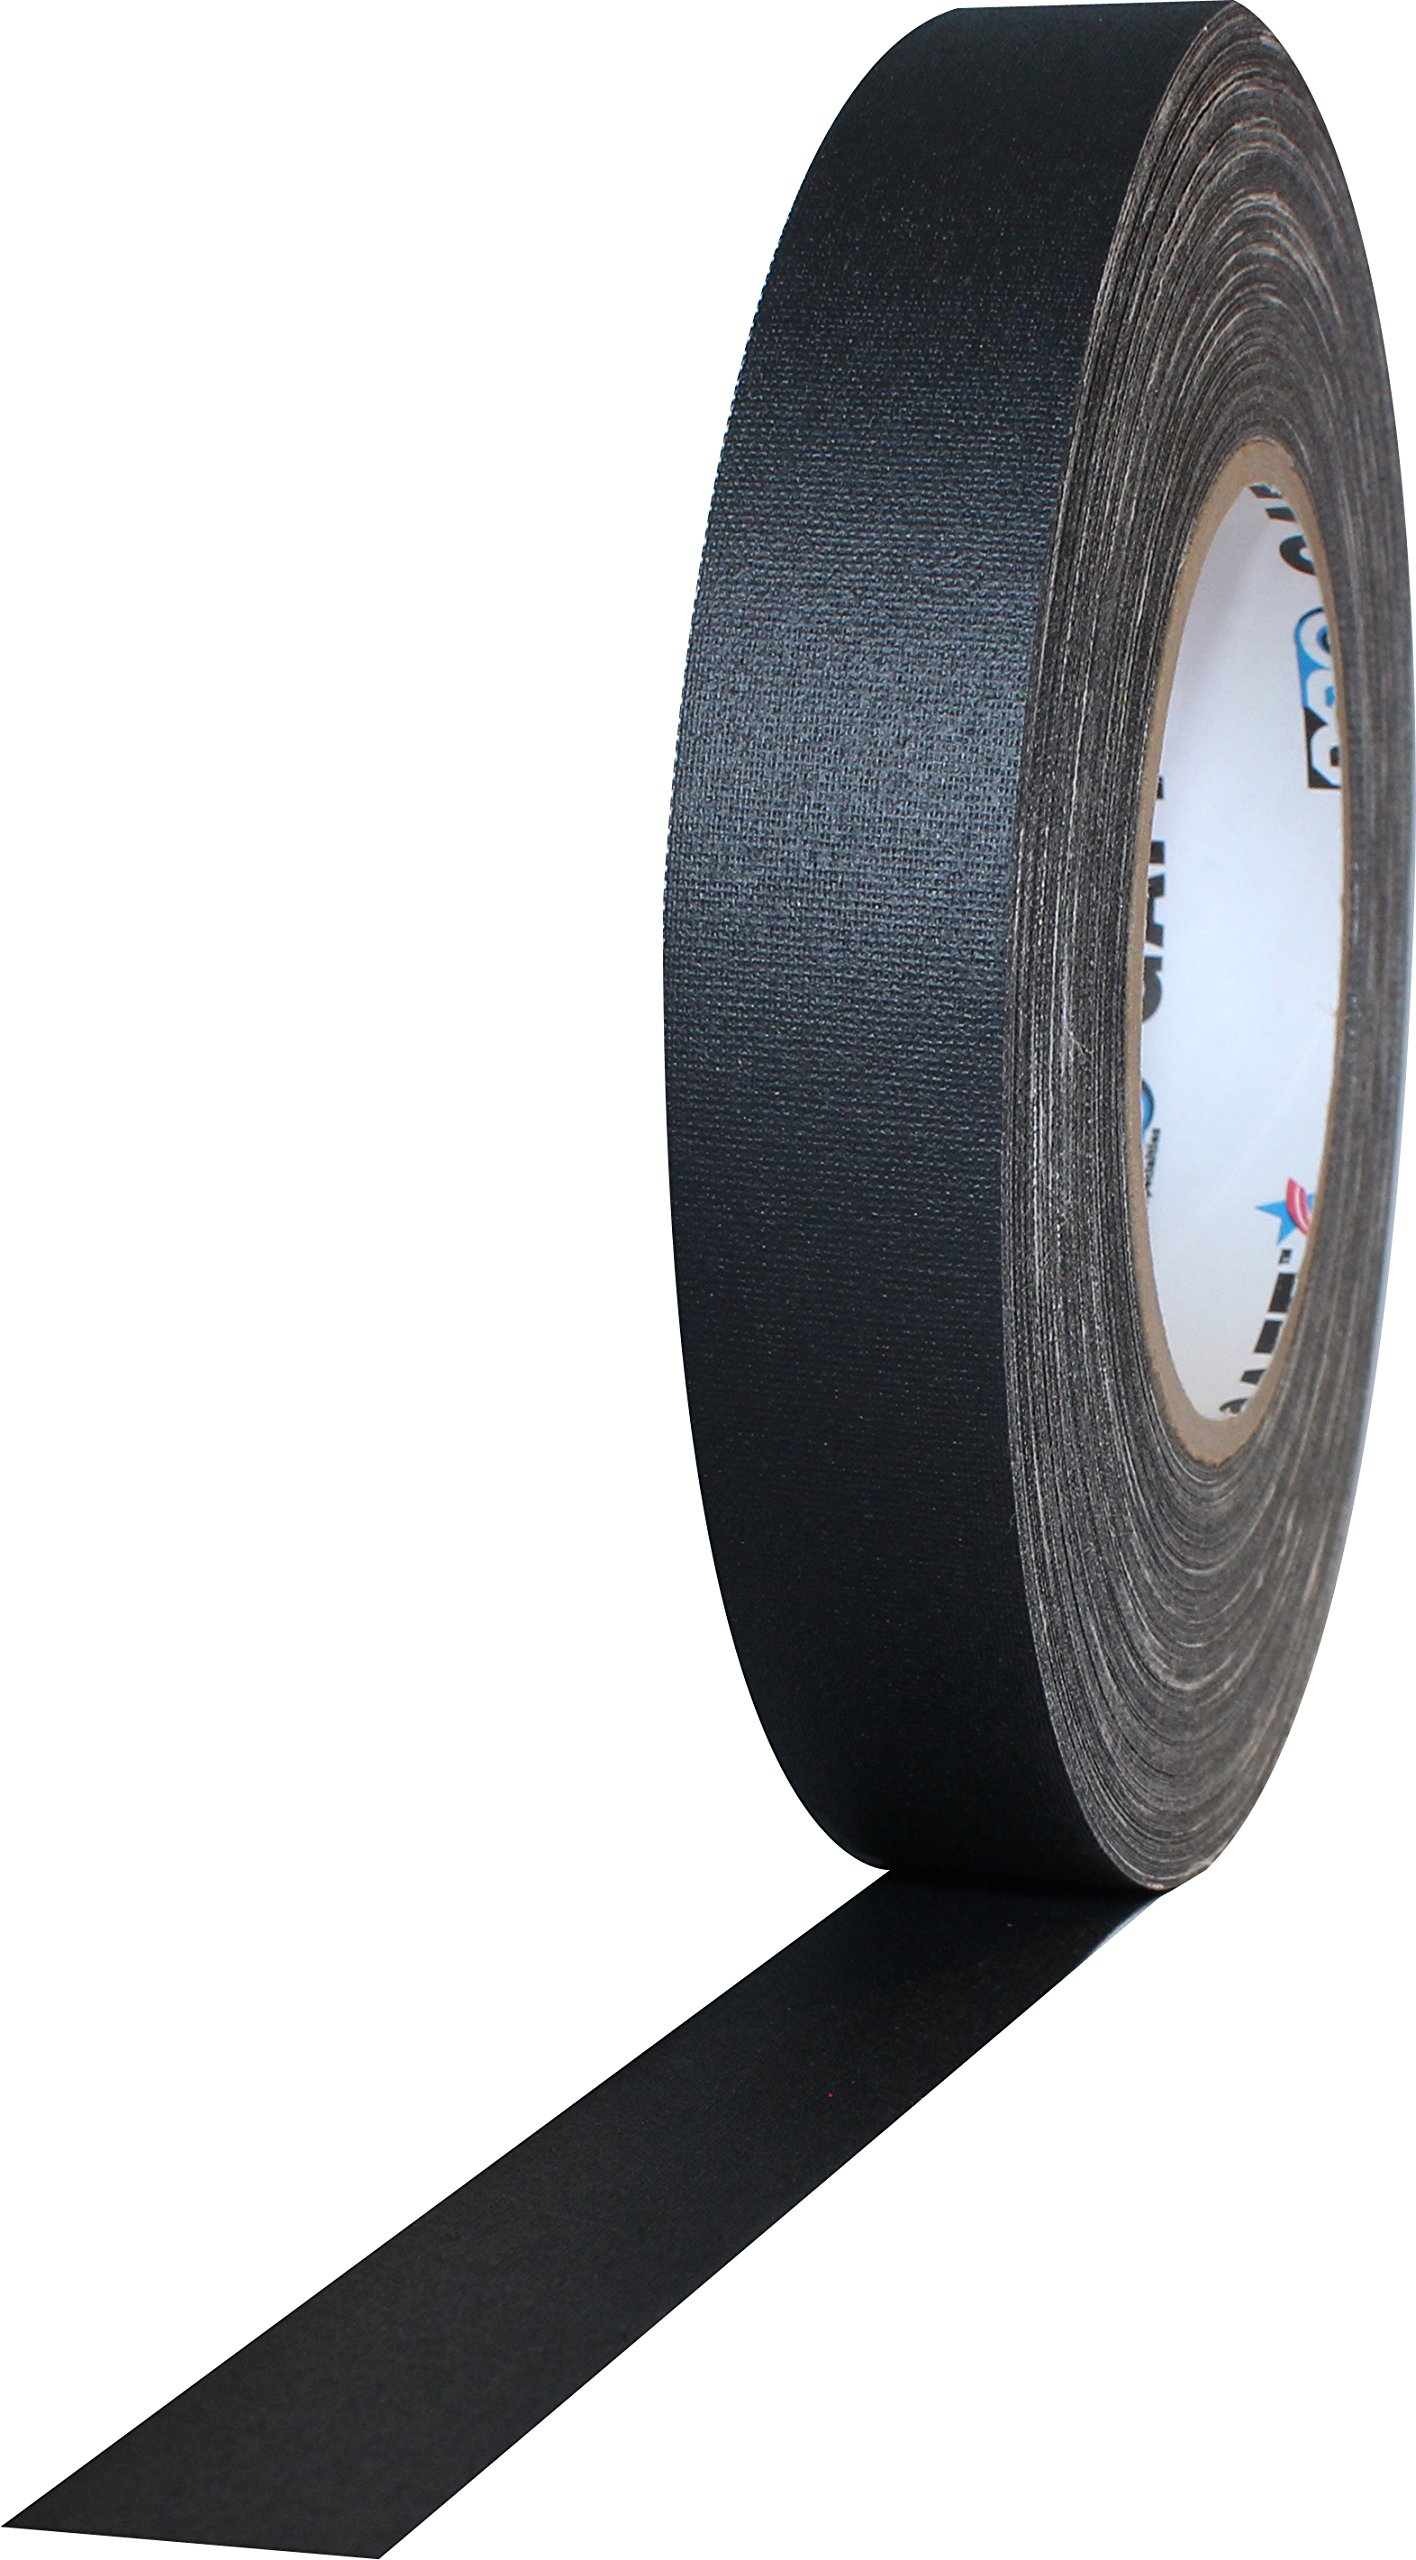 """1"""" Width ProTapes Pro Gaff Premium Matte Cloth Gaffer's Tape With Rubber Adhesive, 11 mils Thick, 55 yds Length, Black (Pack of 1)"""